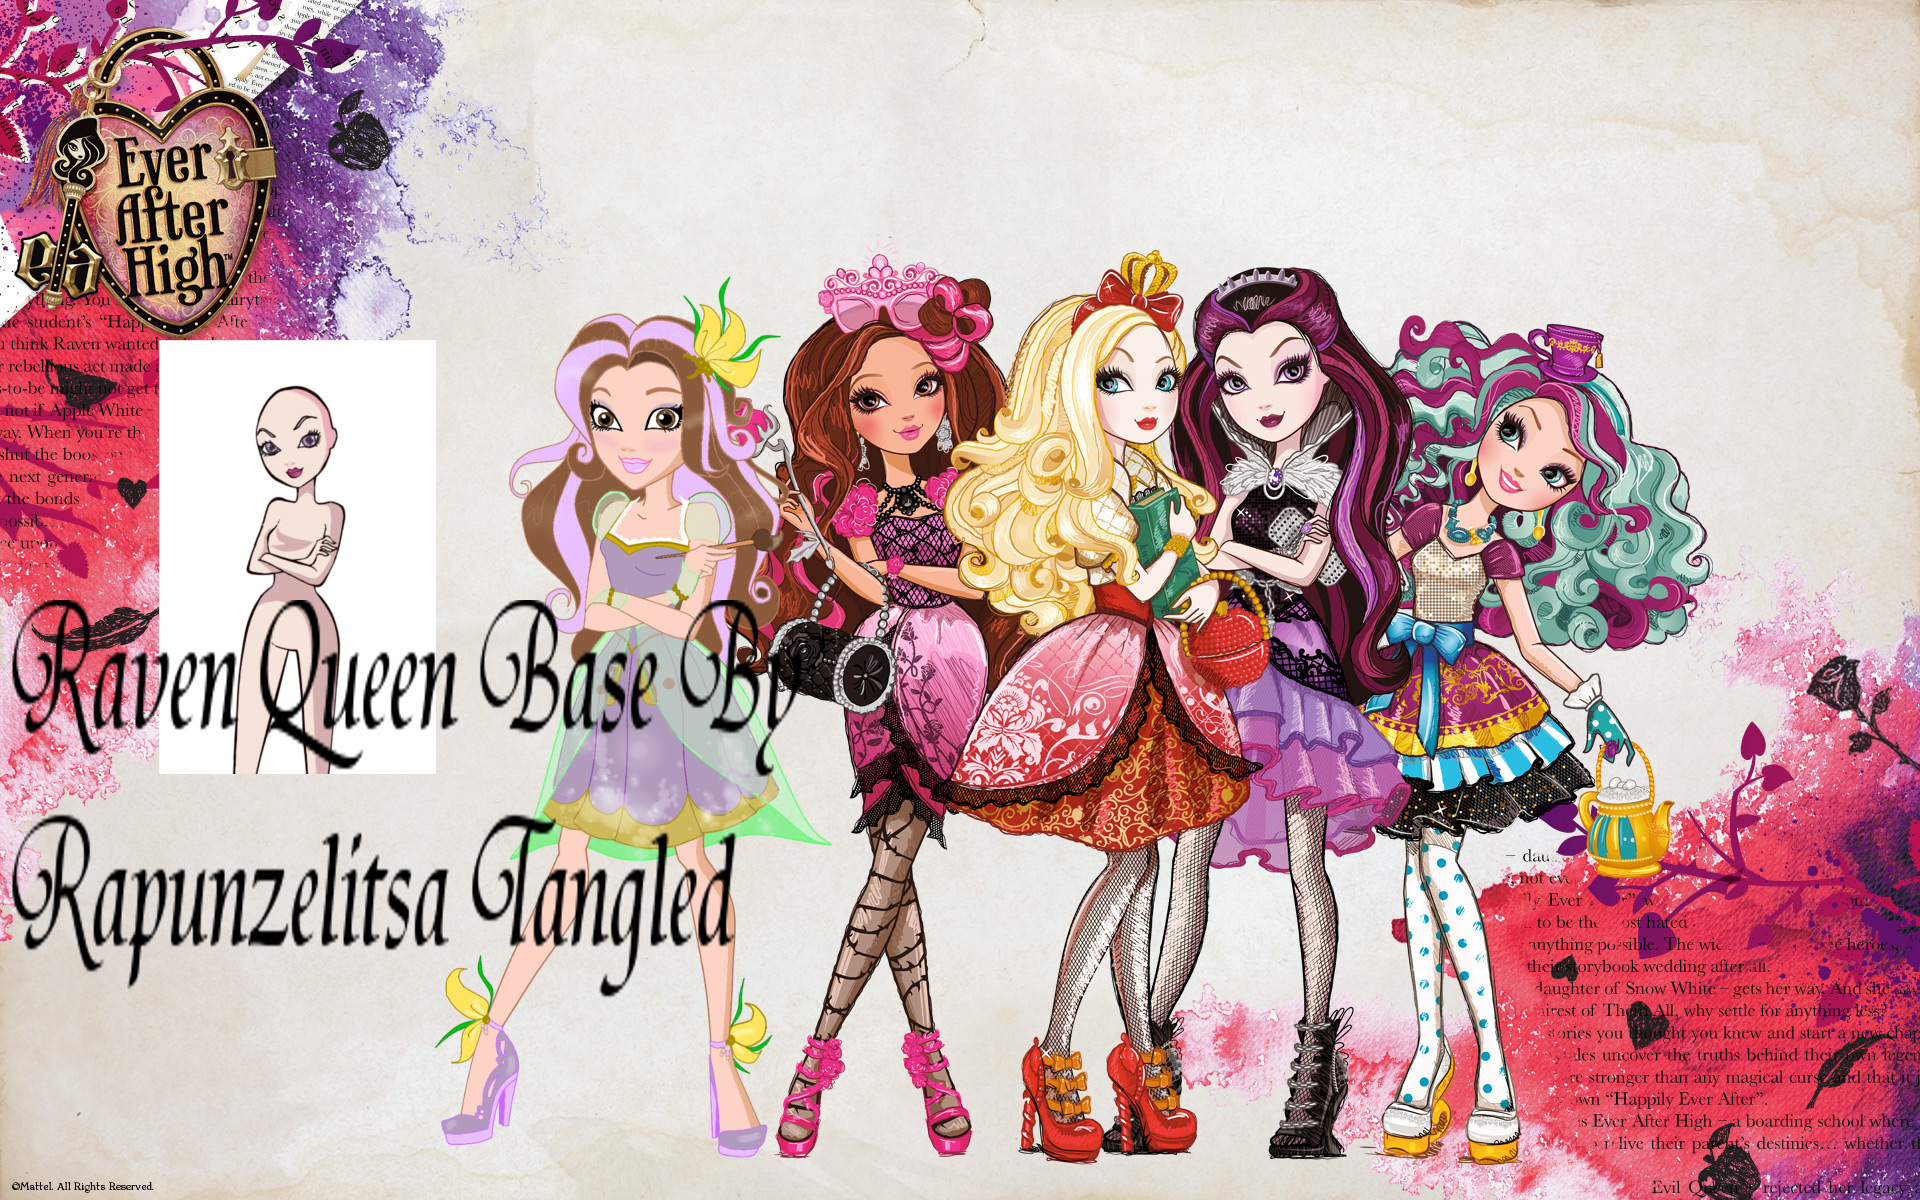 RapunzelitsaTangled Ever After High Base Raven Queen By